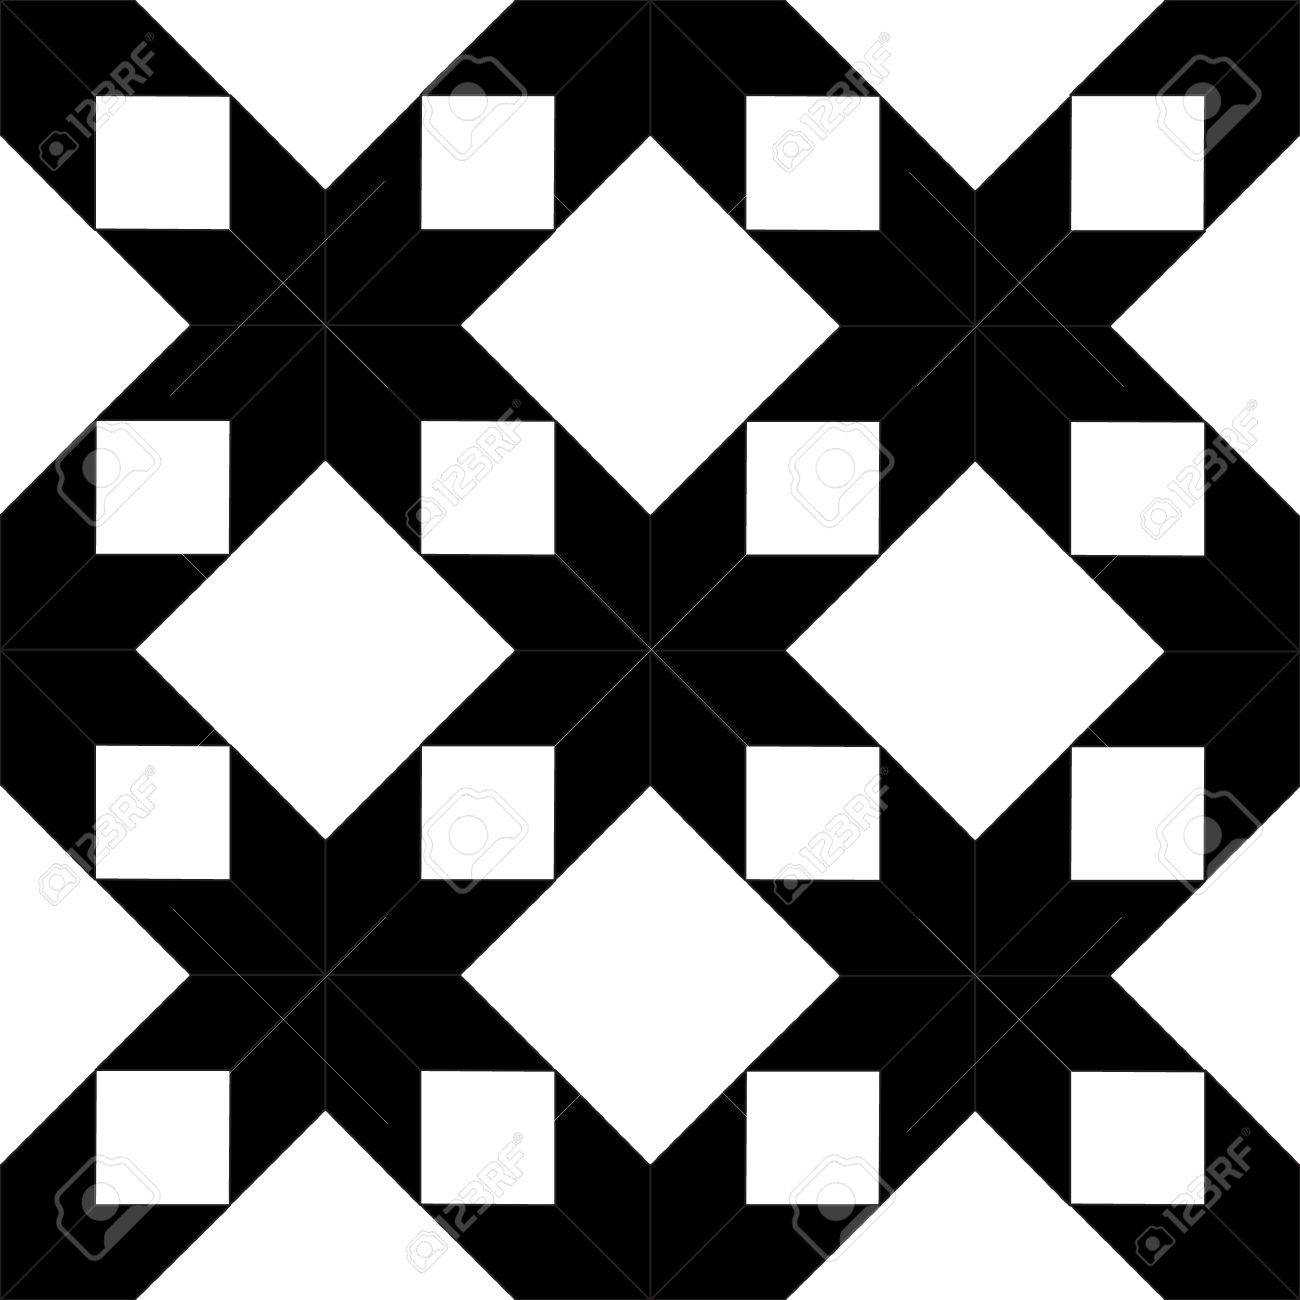 quilted star shape fabric seamless pattern in black and white